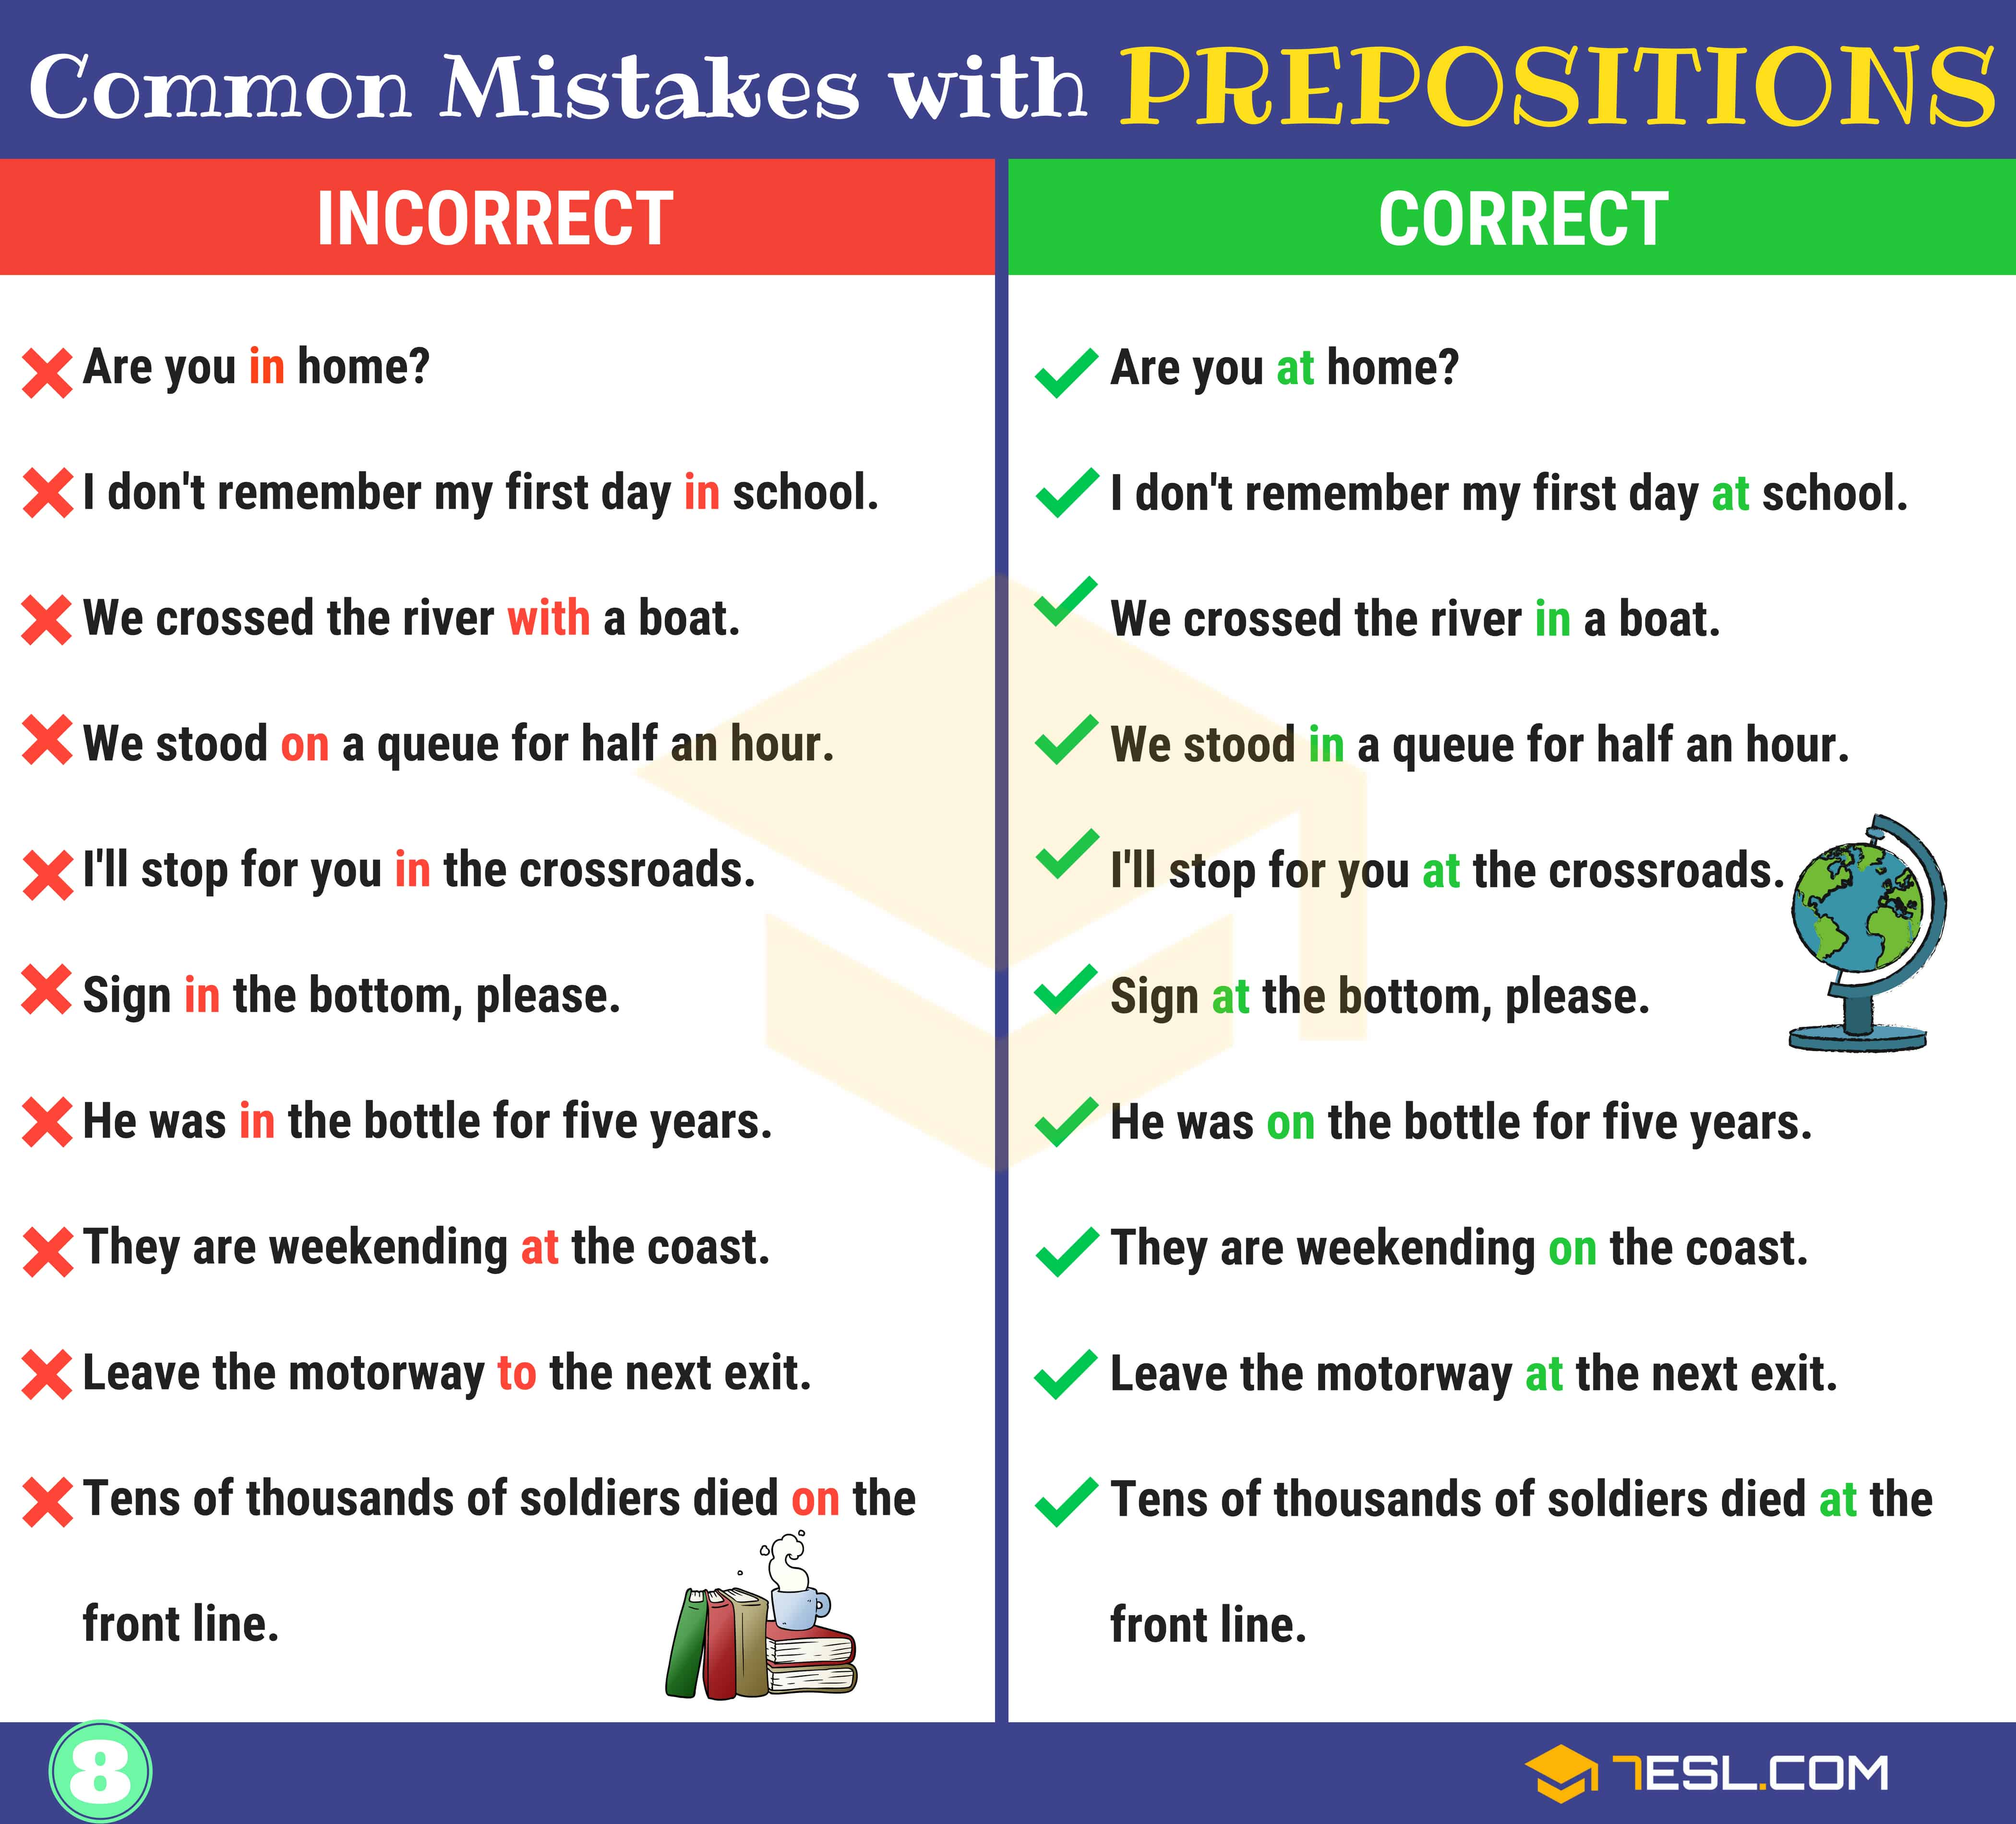 130+ Common MISTAKES With PREPOSITIONS And How To Avoid Them 9